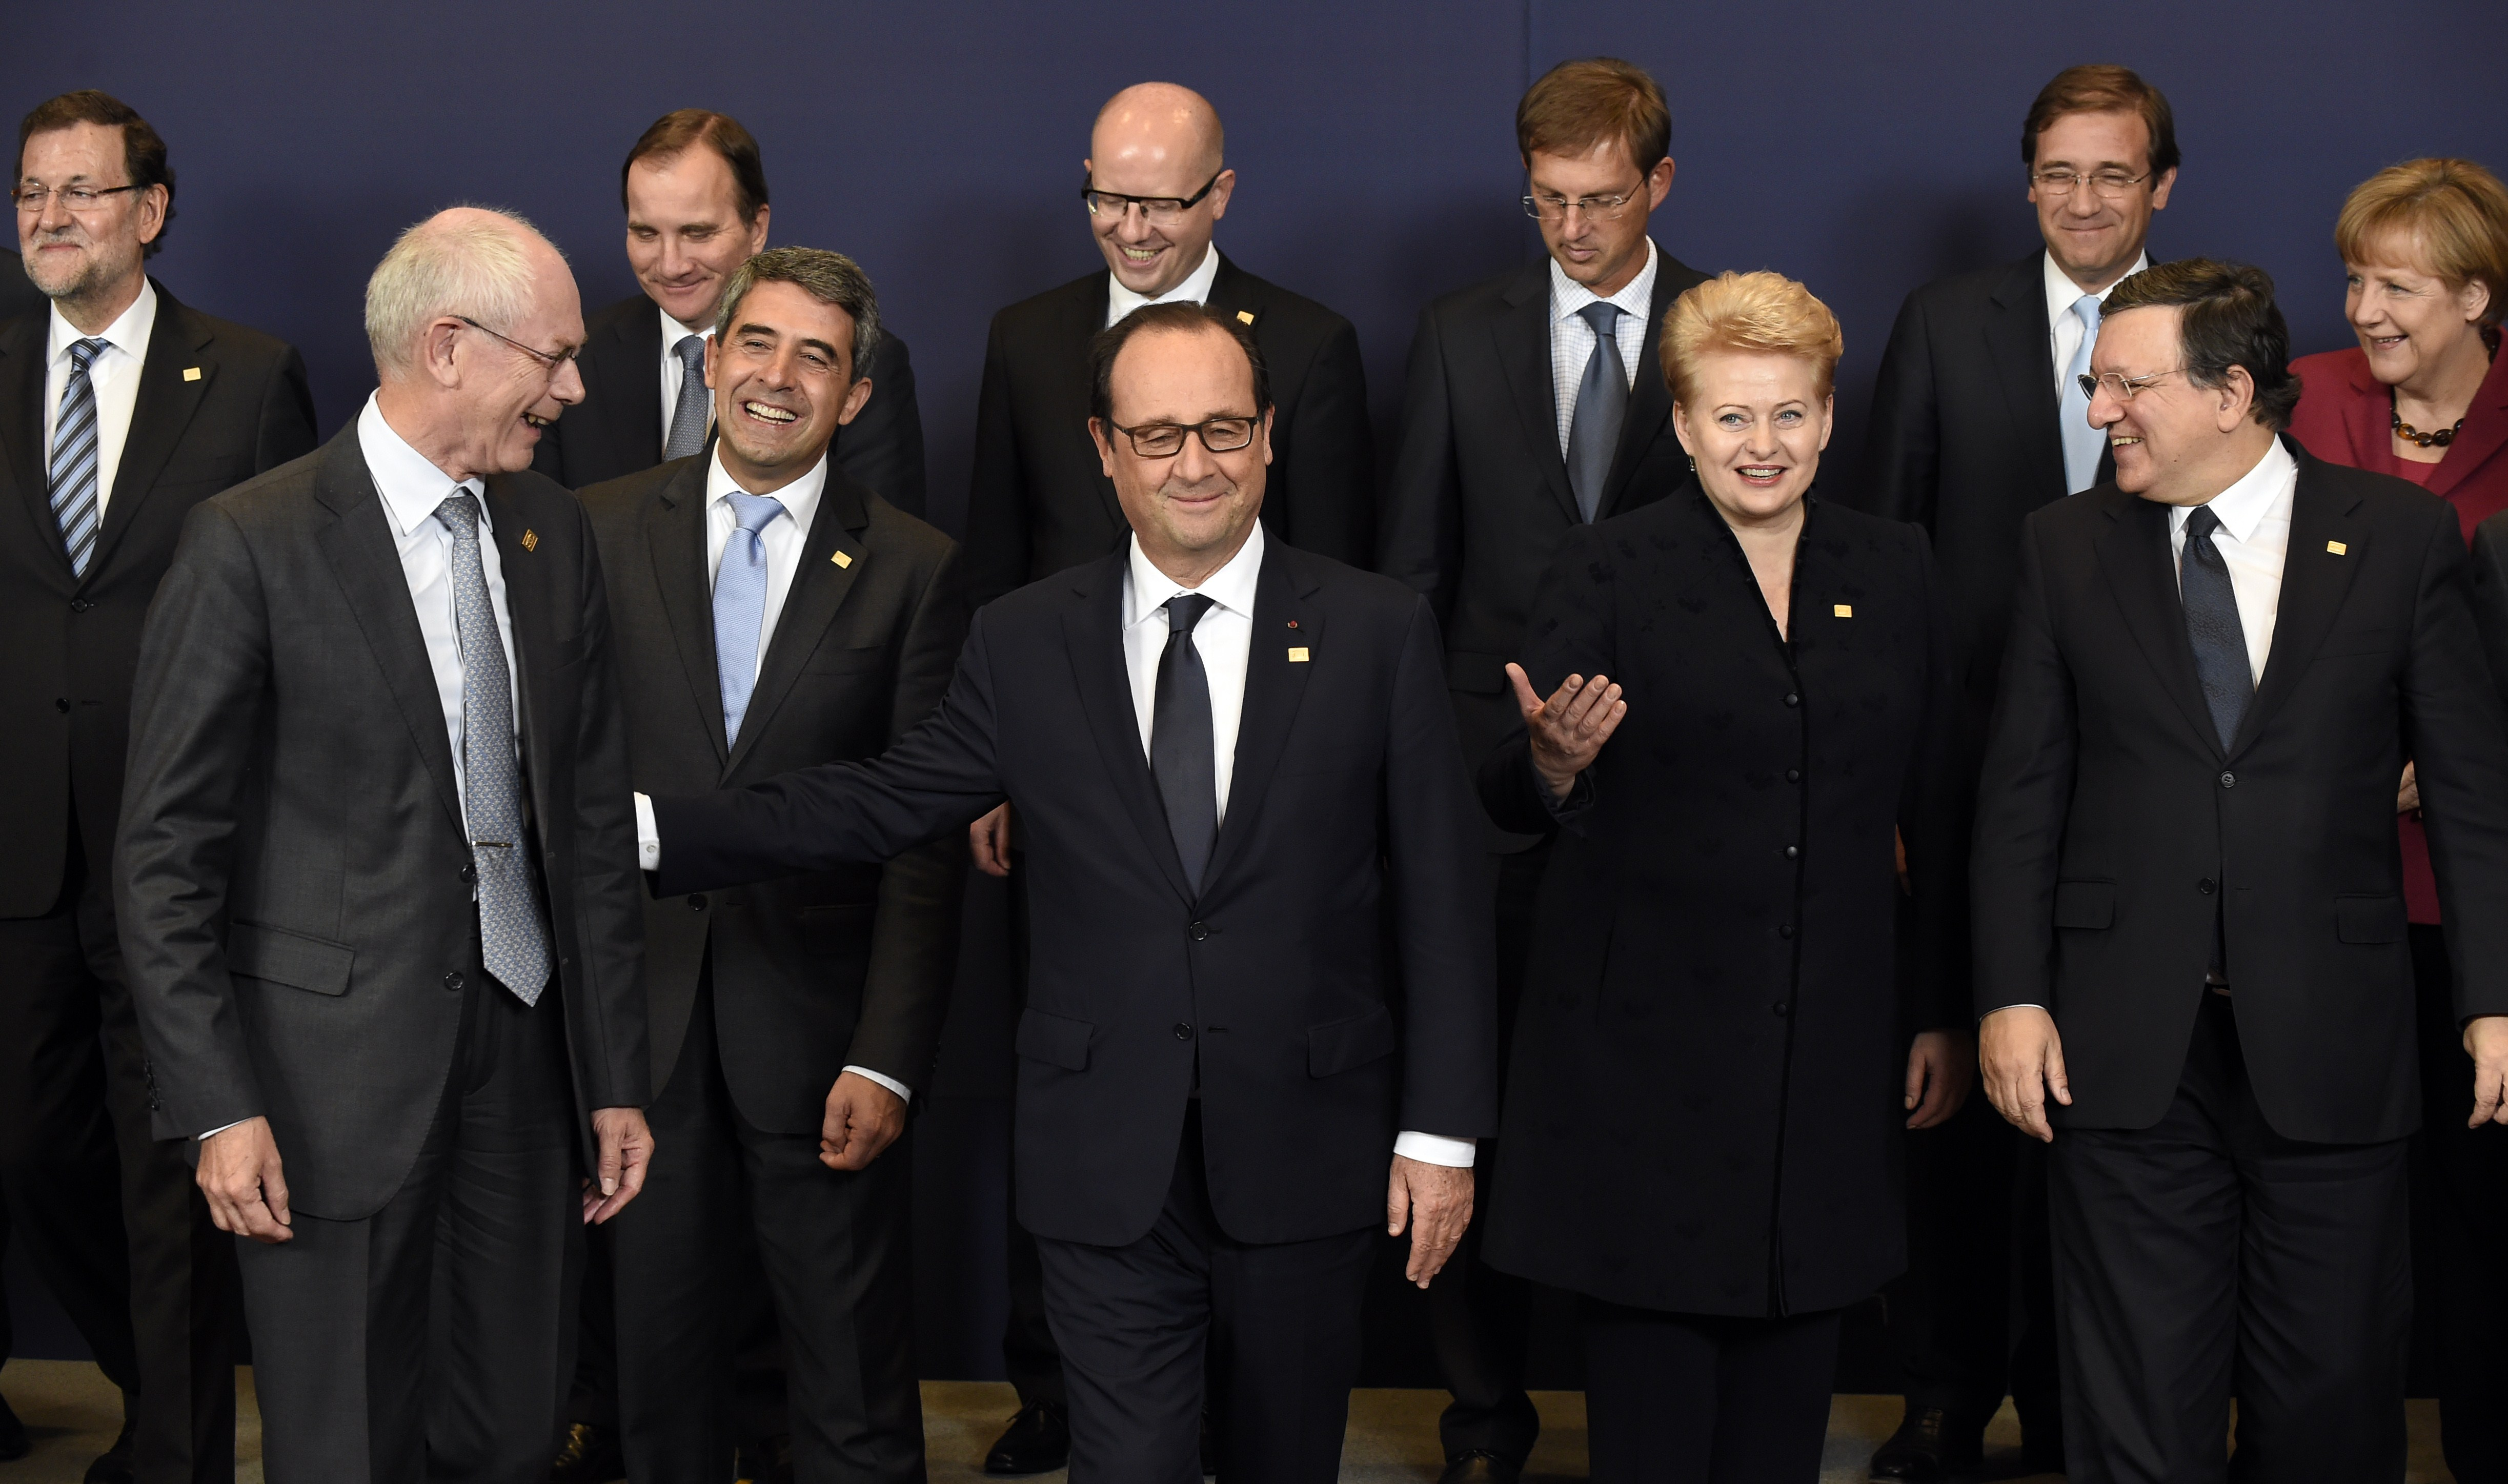 European heads of state and government (from back left) Spanish Prime Minister Mariano Rajoy, Swedish Prime Minister Stefan Loefven, Czech Prime Minister Bohuslav Sobotka, Slovenian Prime Minister Miro Cerar, Portuguese Prime Minister Pedro Passos Coelho and German Chancellor Angela Merkel (from front left) European Council President Herman Van Rompuy, Bulgarian President  Rosen Plevneliev, French President  Francois Hollande, Lithuanian President Dalia Grybauskaite and European Commission President Jose Manuel Barroso talk before a family photo during a European Union summit at the EU headquarters in Brussels on Oct 23, 2014.